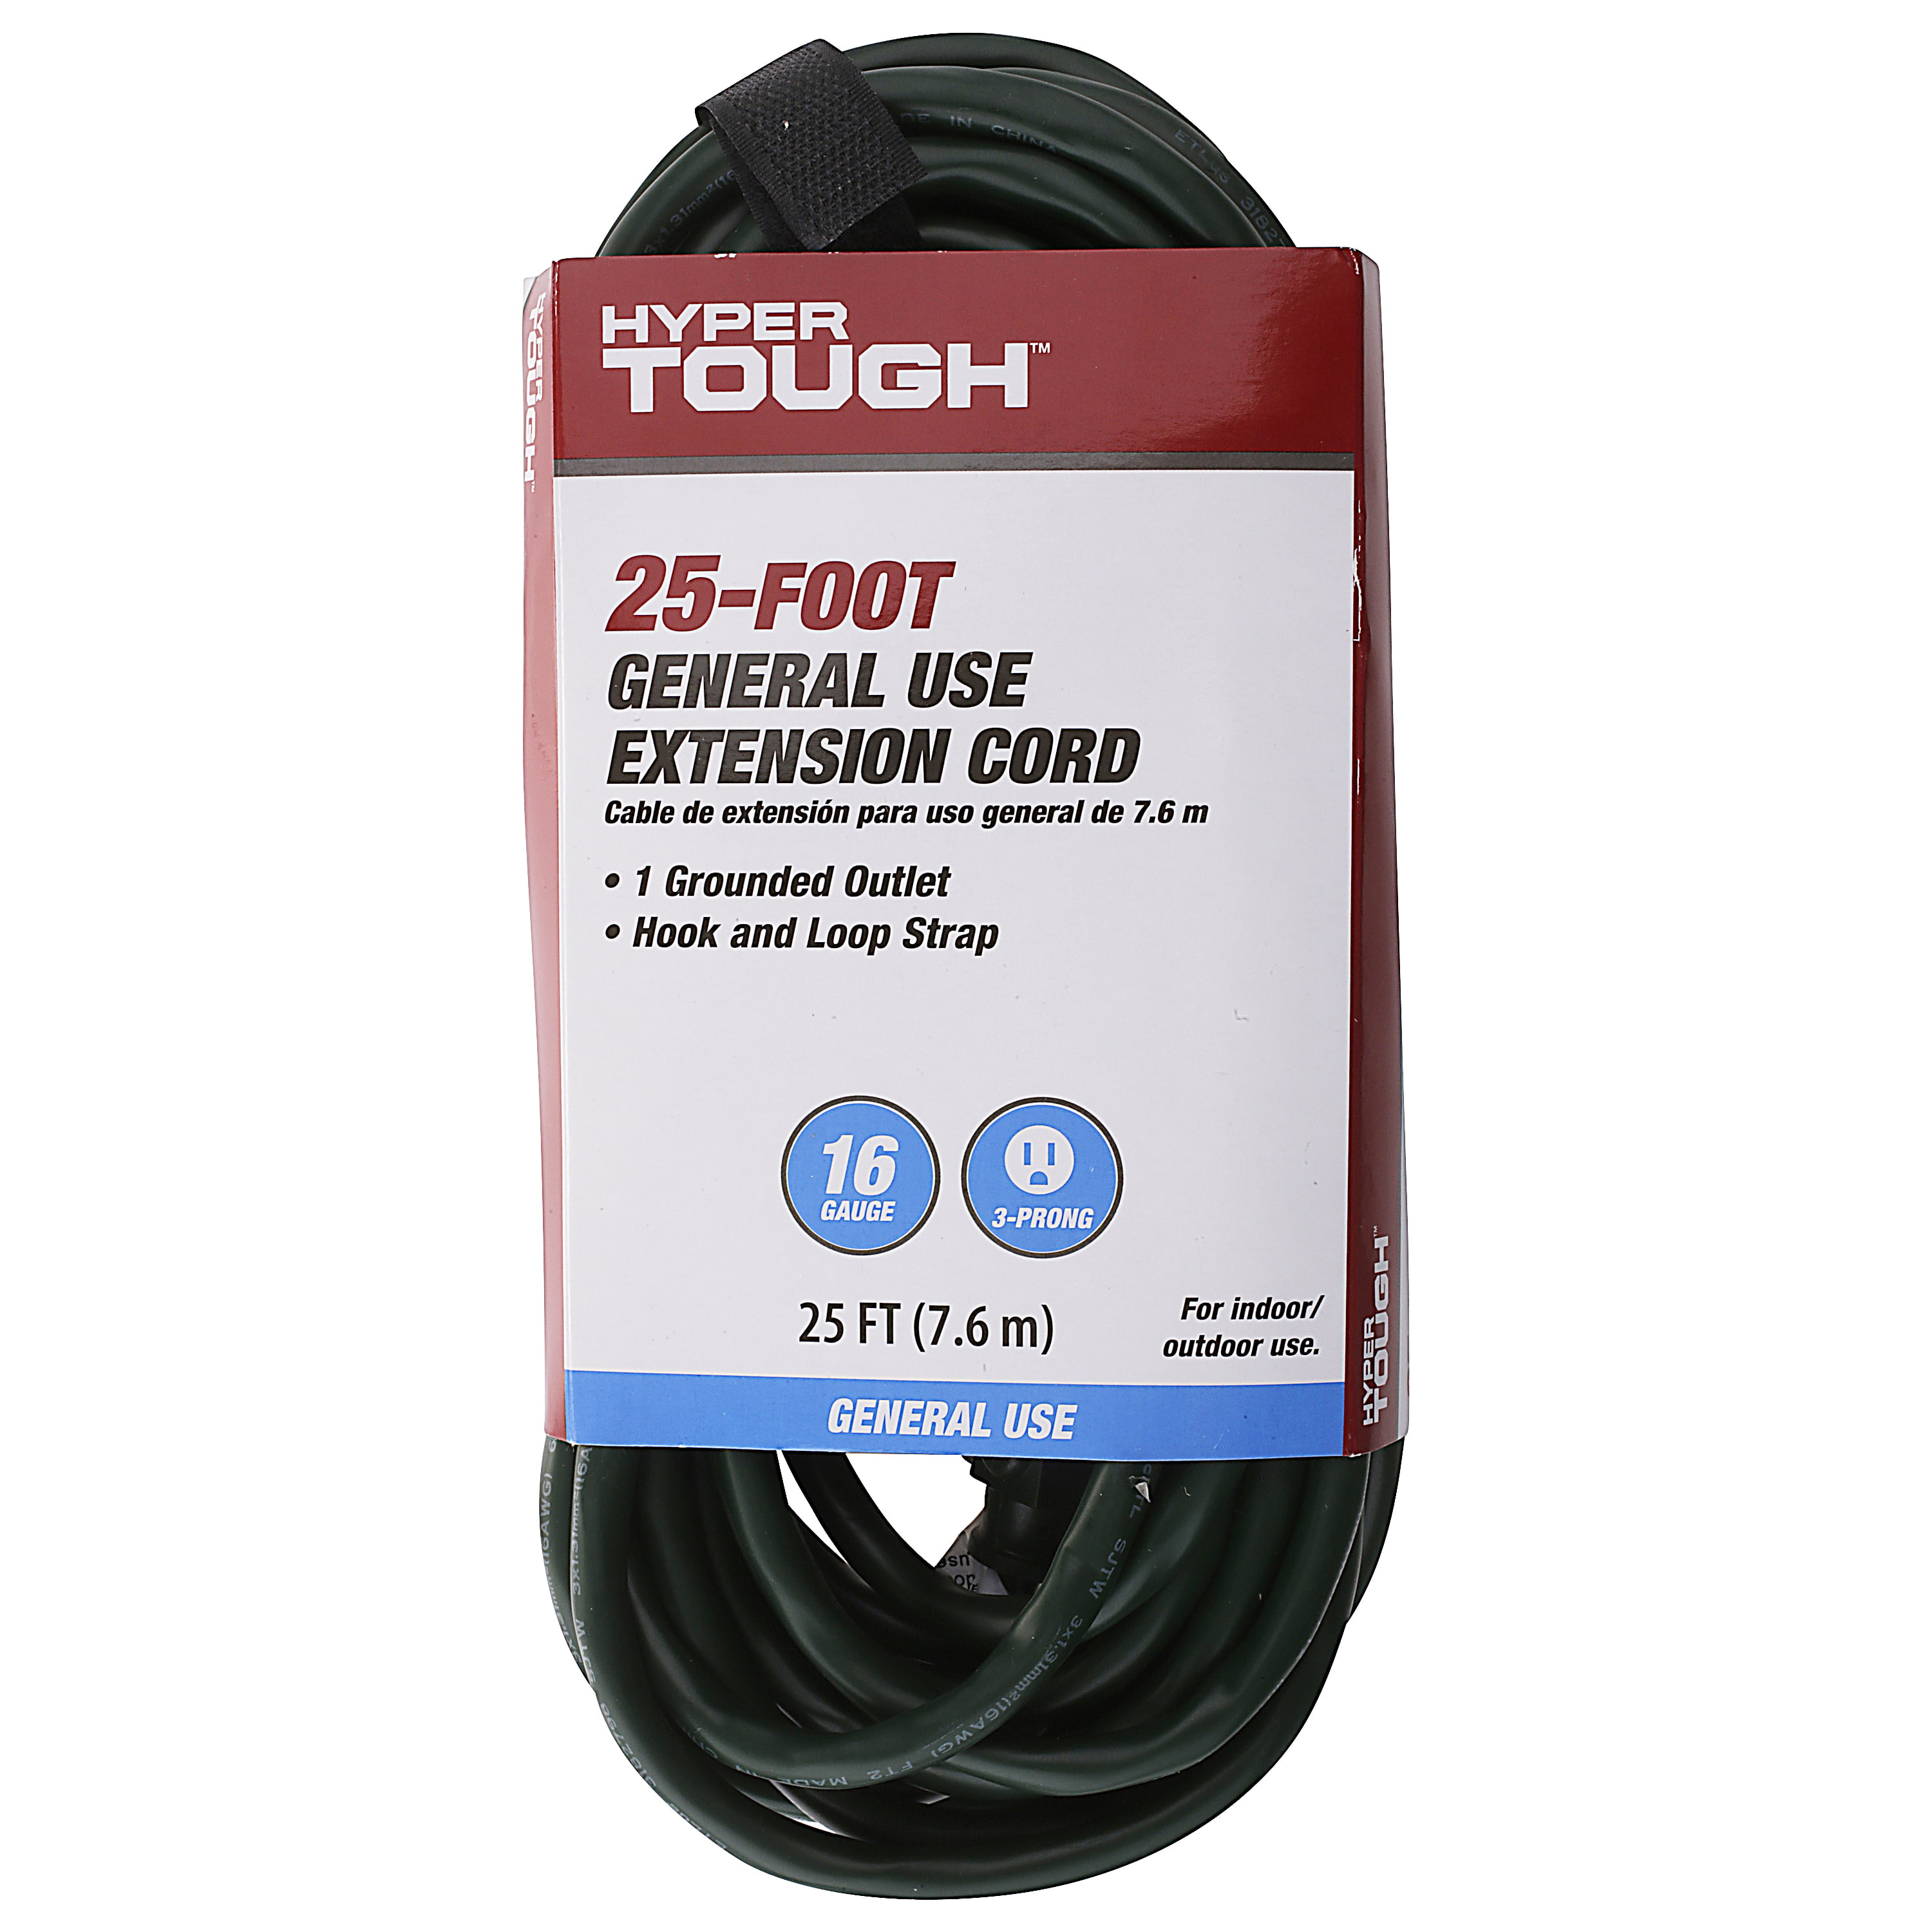 HyperTough 25 Foot Outdoor Extension Cord - Walmart.com